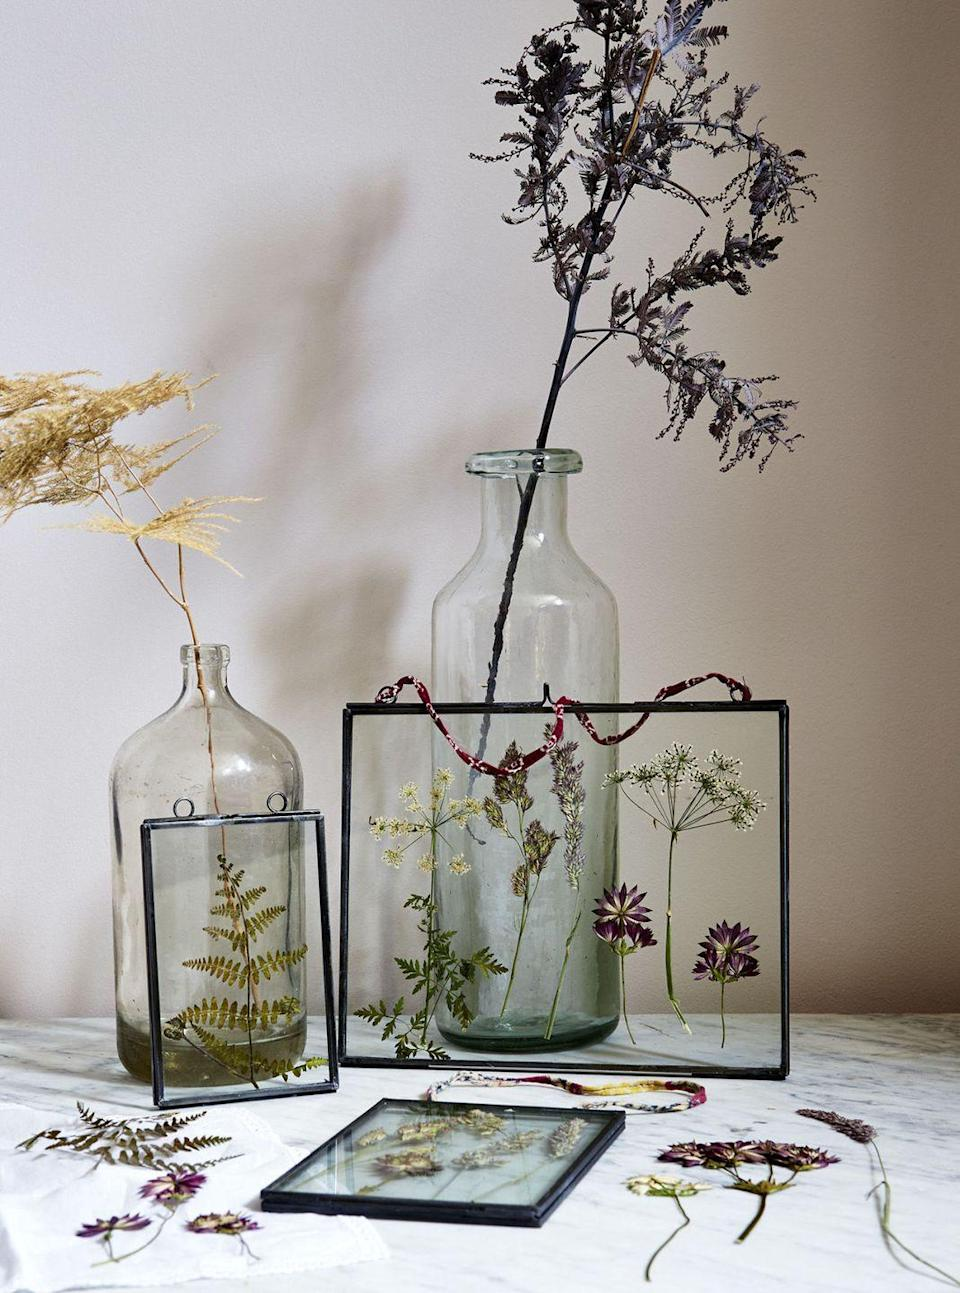 """<p>Wild flowers can easily be preserved and made into a beautiful glass framed display for a flower-loving friend. </p><p><strong>Get the tutorial at <a href=""""http://www.countryliving.co.uk/create/craft/how-to/a110/learn-the-art-of-flower-pressing/"""" rel=""""nofollow noopener"""" target=""""_blank"""" data-ylk=""""slk:Country Living UK"""" class=""""link rapid-noclick-resp""""><em>Country Living UK</em></a>.</strong> </p><p><strong><a class=""""link rapid-noclick-resp"""" href=""""https://go.redirectingat.com?id=74968X1596630&url=https%3A%2F%2Fwww.etsy.com%2Flisting%2F635208924%2Fbronze-picture-frames-hanging-on-walls&sref=https%3A%2F%2Fwww.countryliving.com%2Fdiy-crafts%2Ftips%2Fg645%2Fcrafty-christmas-presents-ideas%2F"""" rel=""""nofollow noopener"""" target=""""_blank"""" data-ylk=""""slk:SHOP SPECIMEN FRAME"""">SHOP SPECIMEN FRAME</a></strong></p>"""